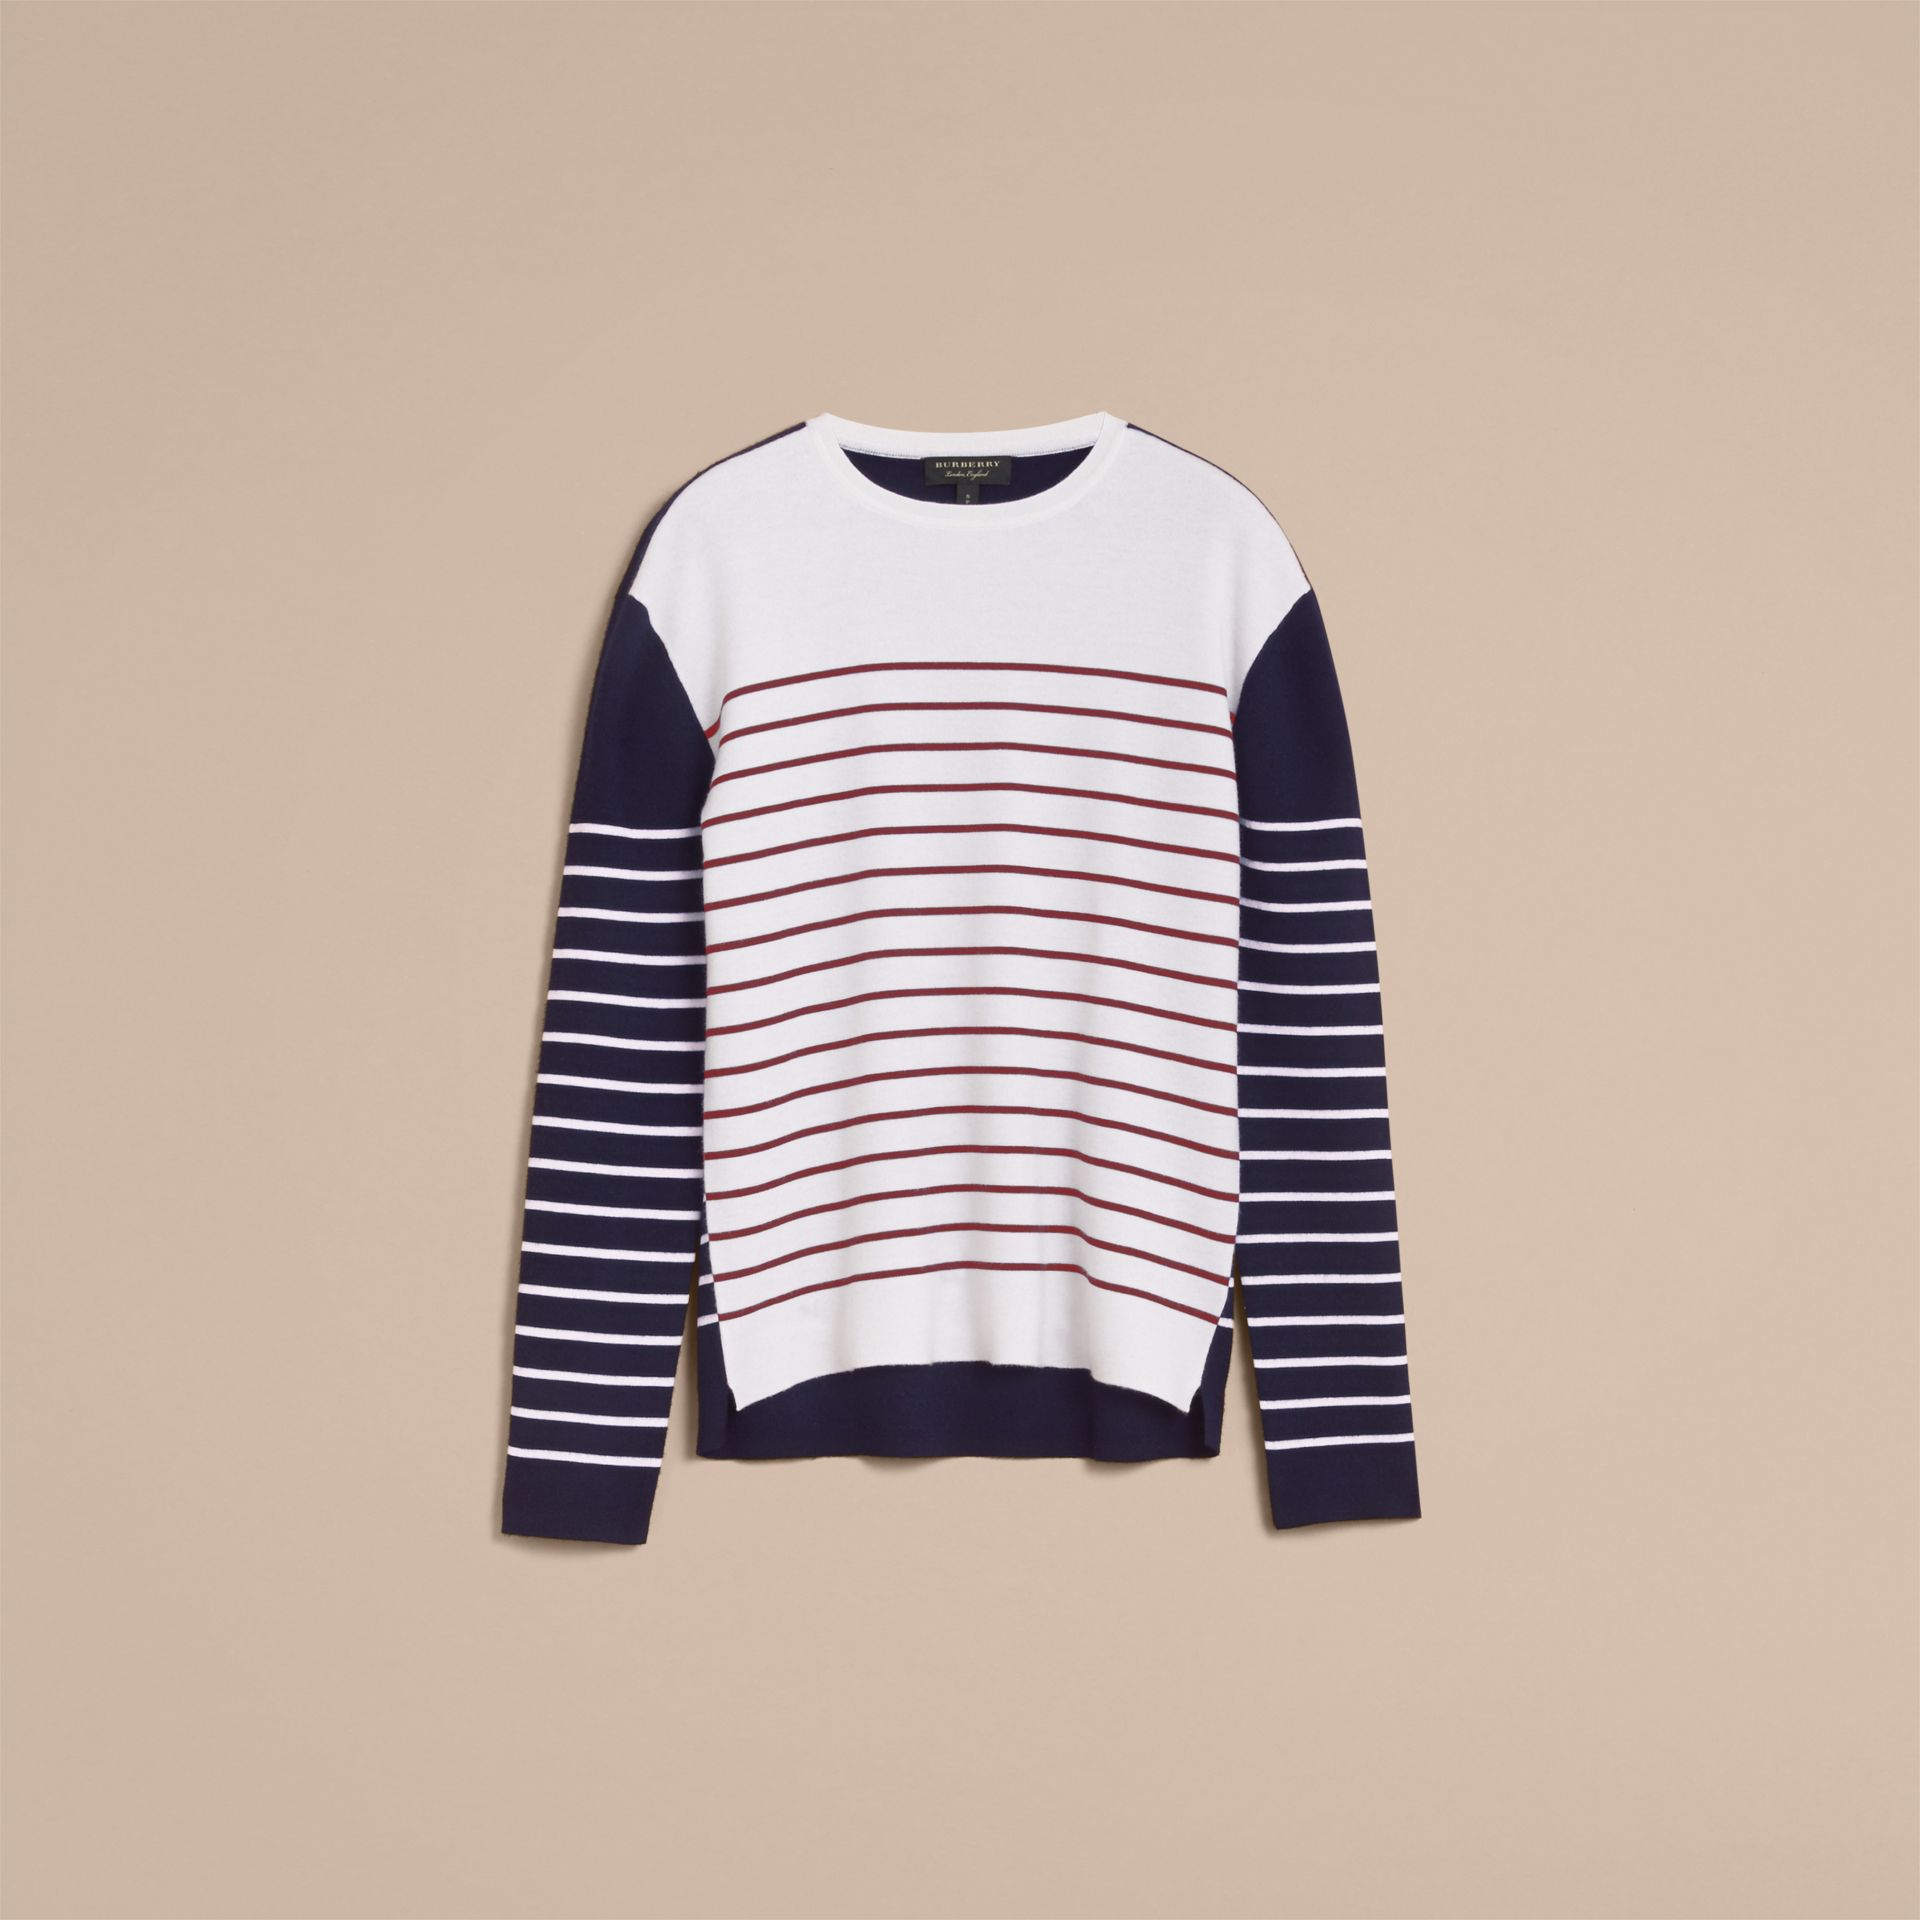 Contrast Stripe Cashmere Blend Sweater in Navy - Men | Burberry - gallery image 4